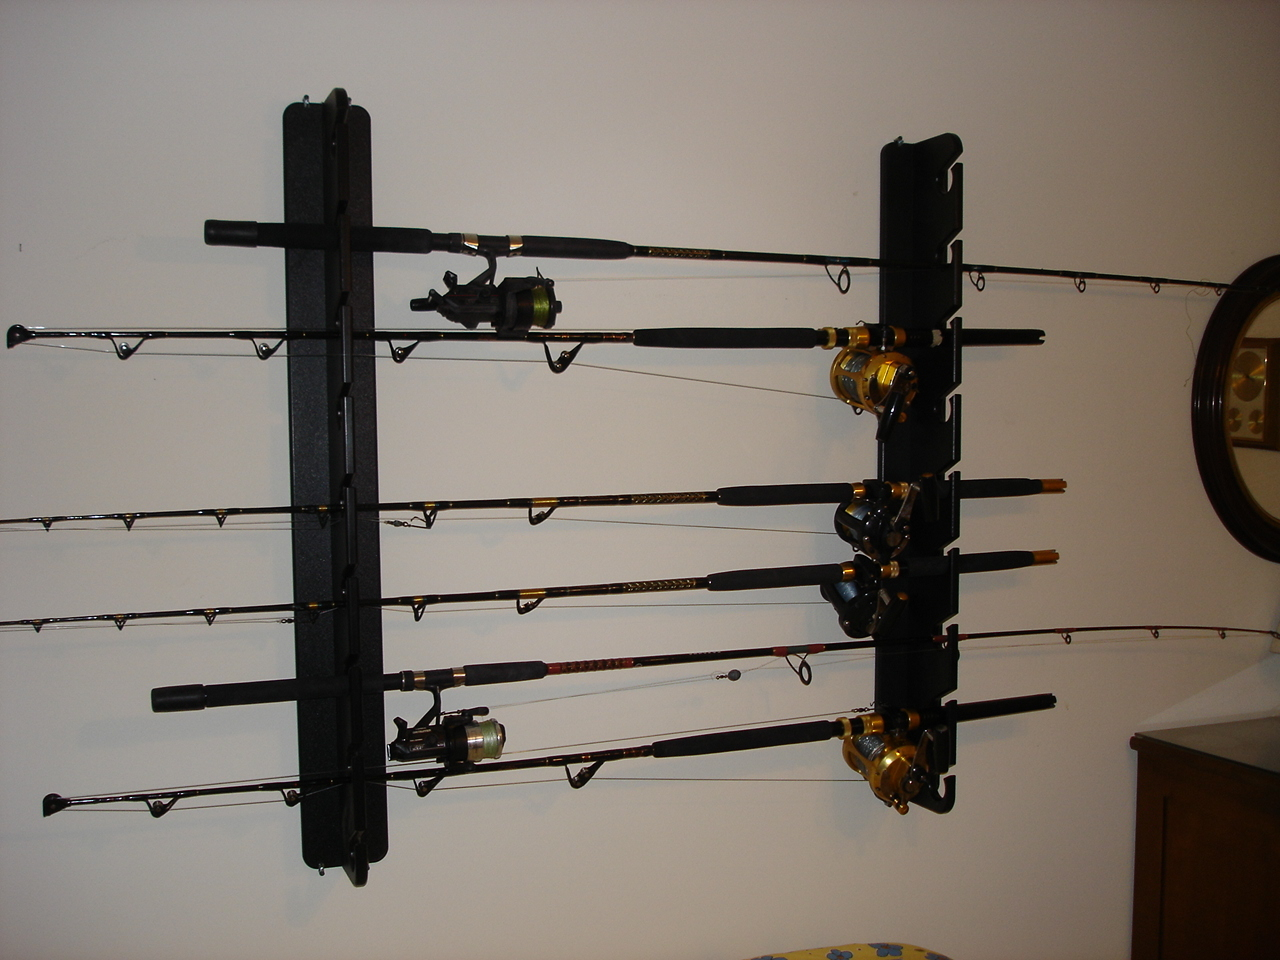 The rod storage